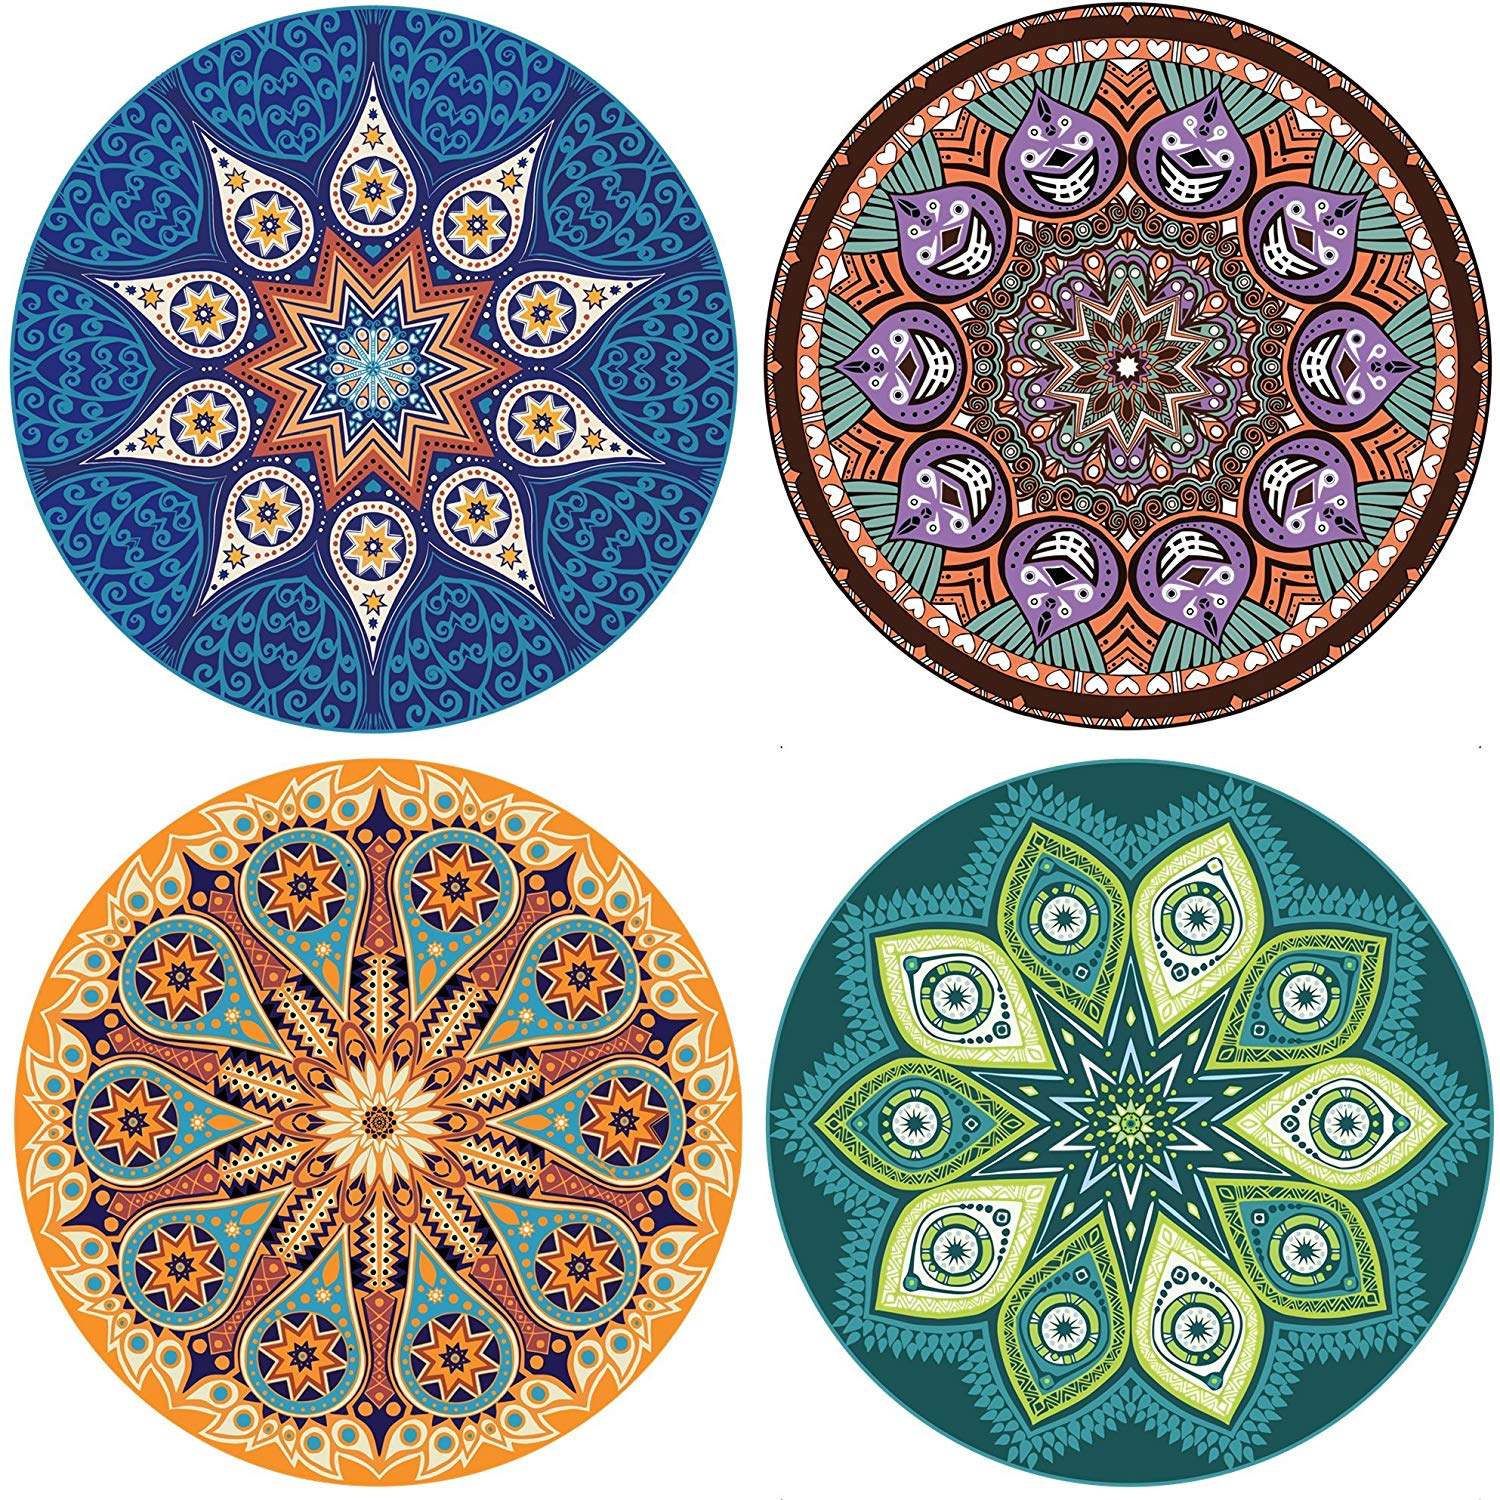 Enkore absorbent ceramic stone coaster for drinks - mandala, large 4.3